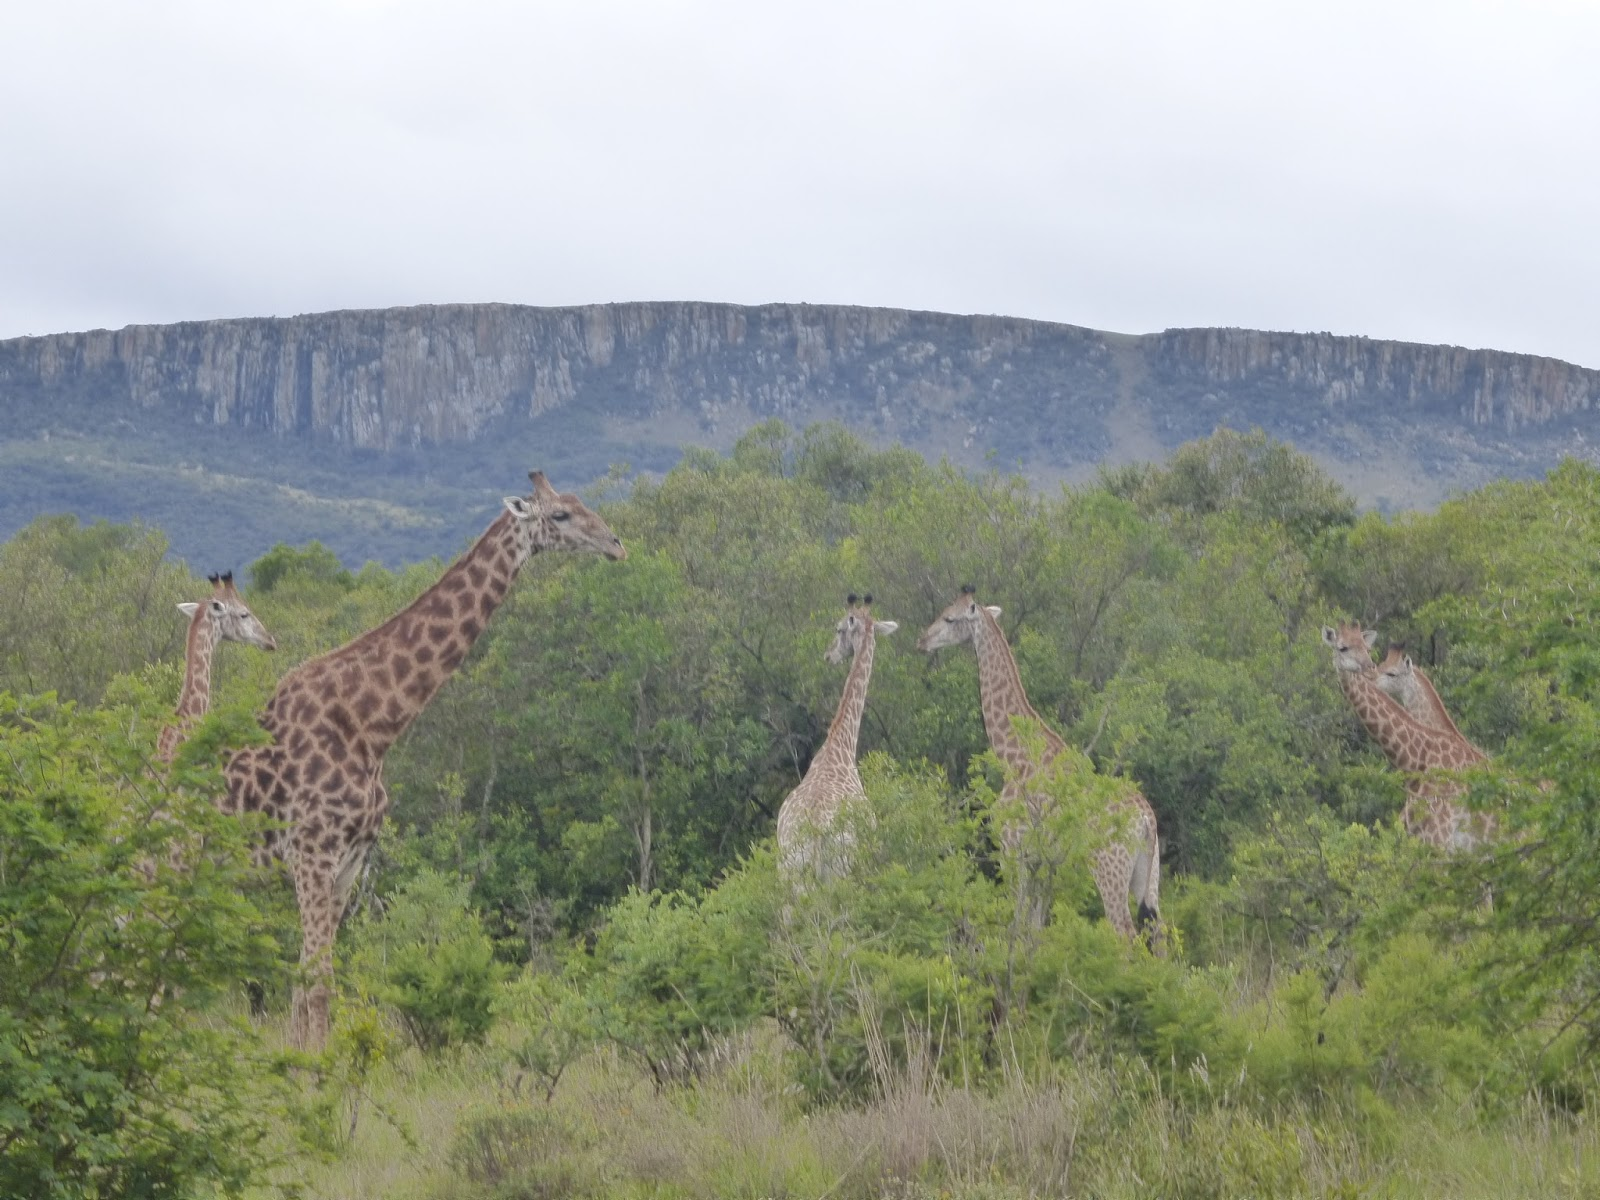 South Africa by car: Zululand (KZN) and its diversity